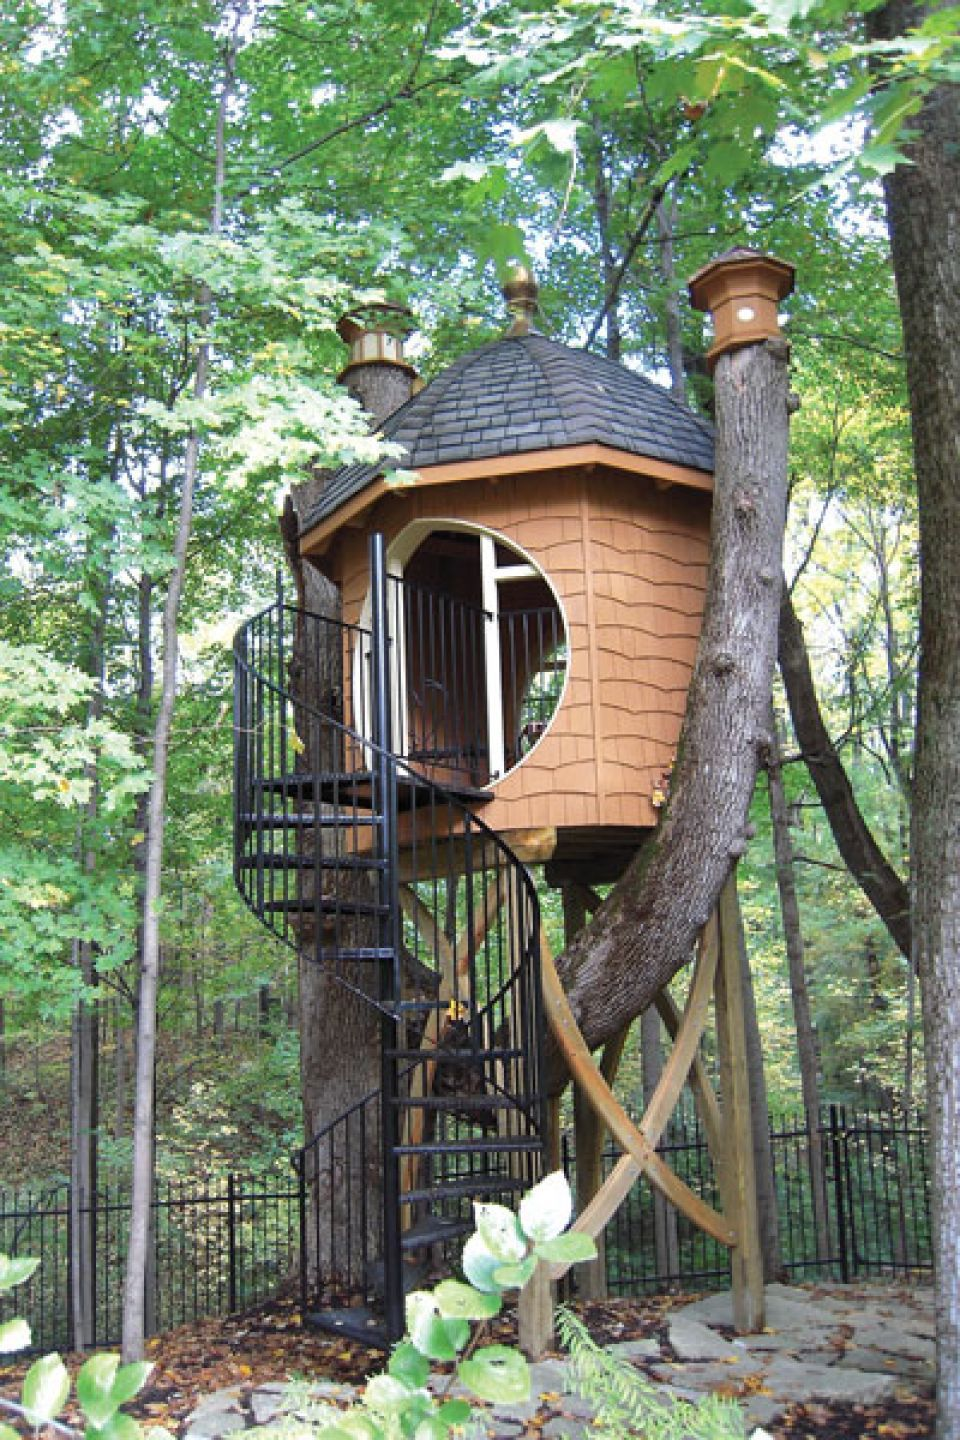 Unique treehouse makes great backyard addition beautiful for Treehouse designers